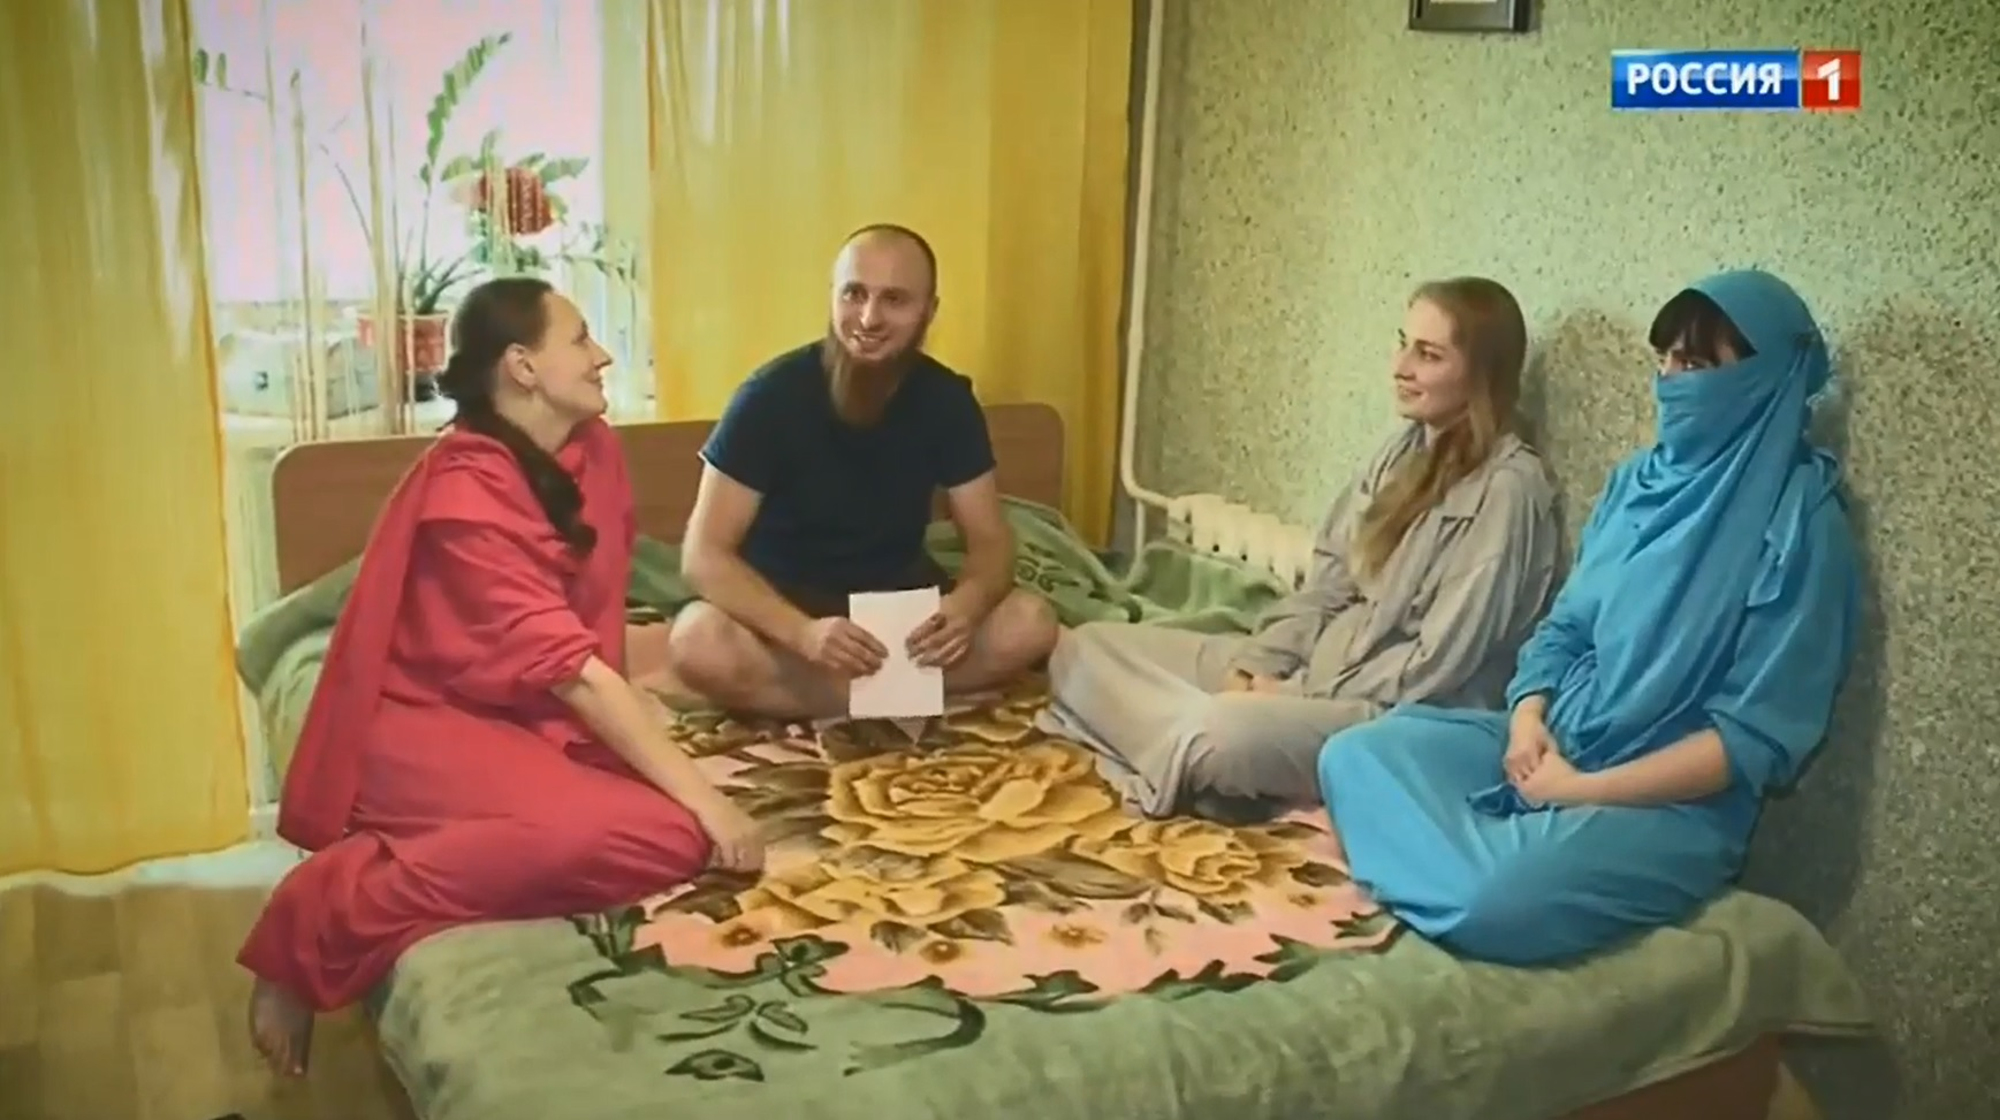 Ivan Sukhov invites his wives to bed each night. Credit: CEN